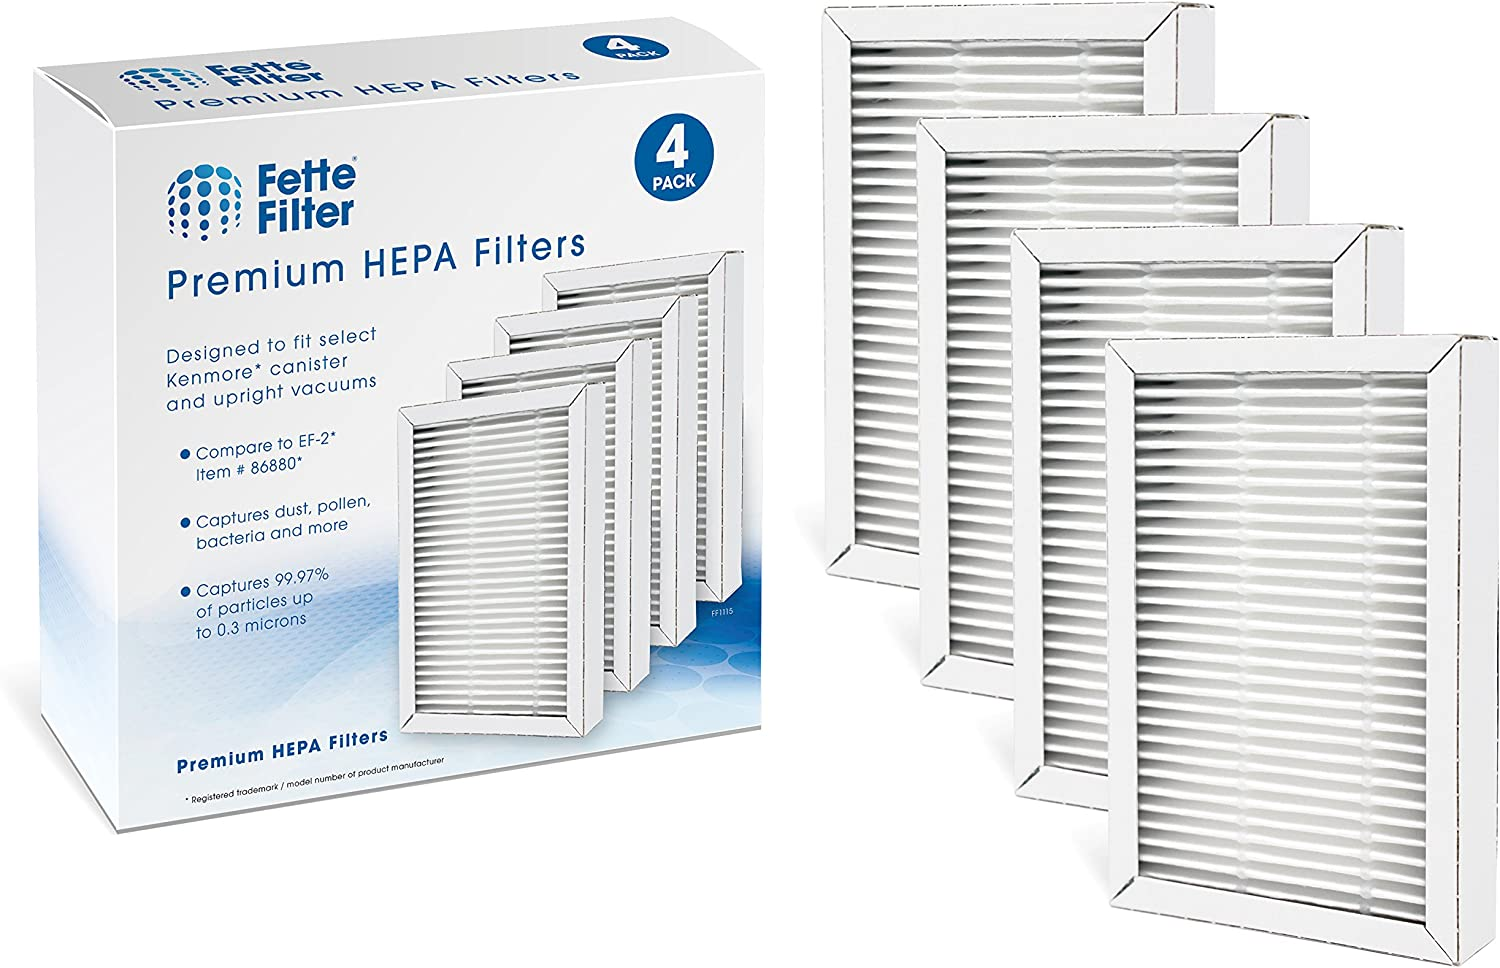 Fette Filter - HEPA Vacuum Filter Compatible with Kenmore Exhaust EF-2 (Compares to 86880) and Also Compatible with Panasonic (Compares to MC-V194H) (Pack of 4)